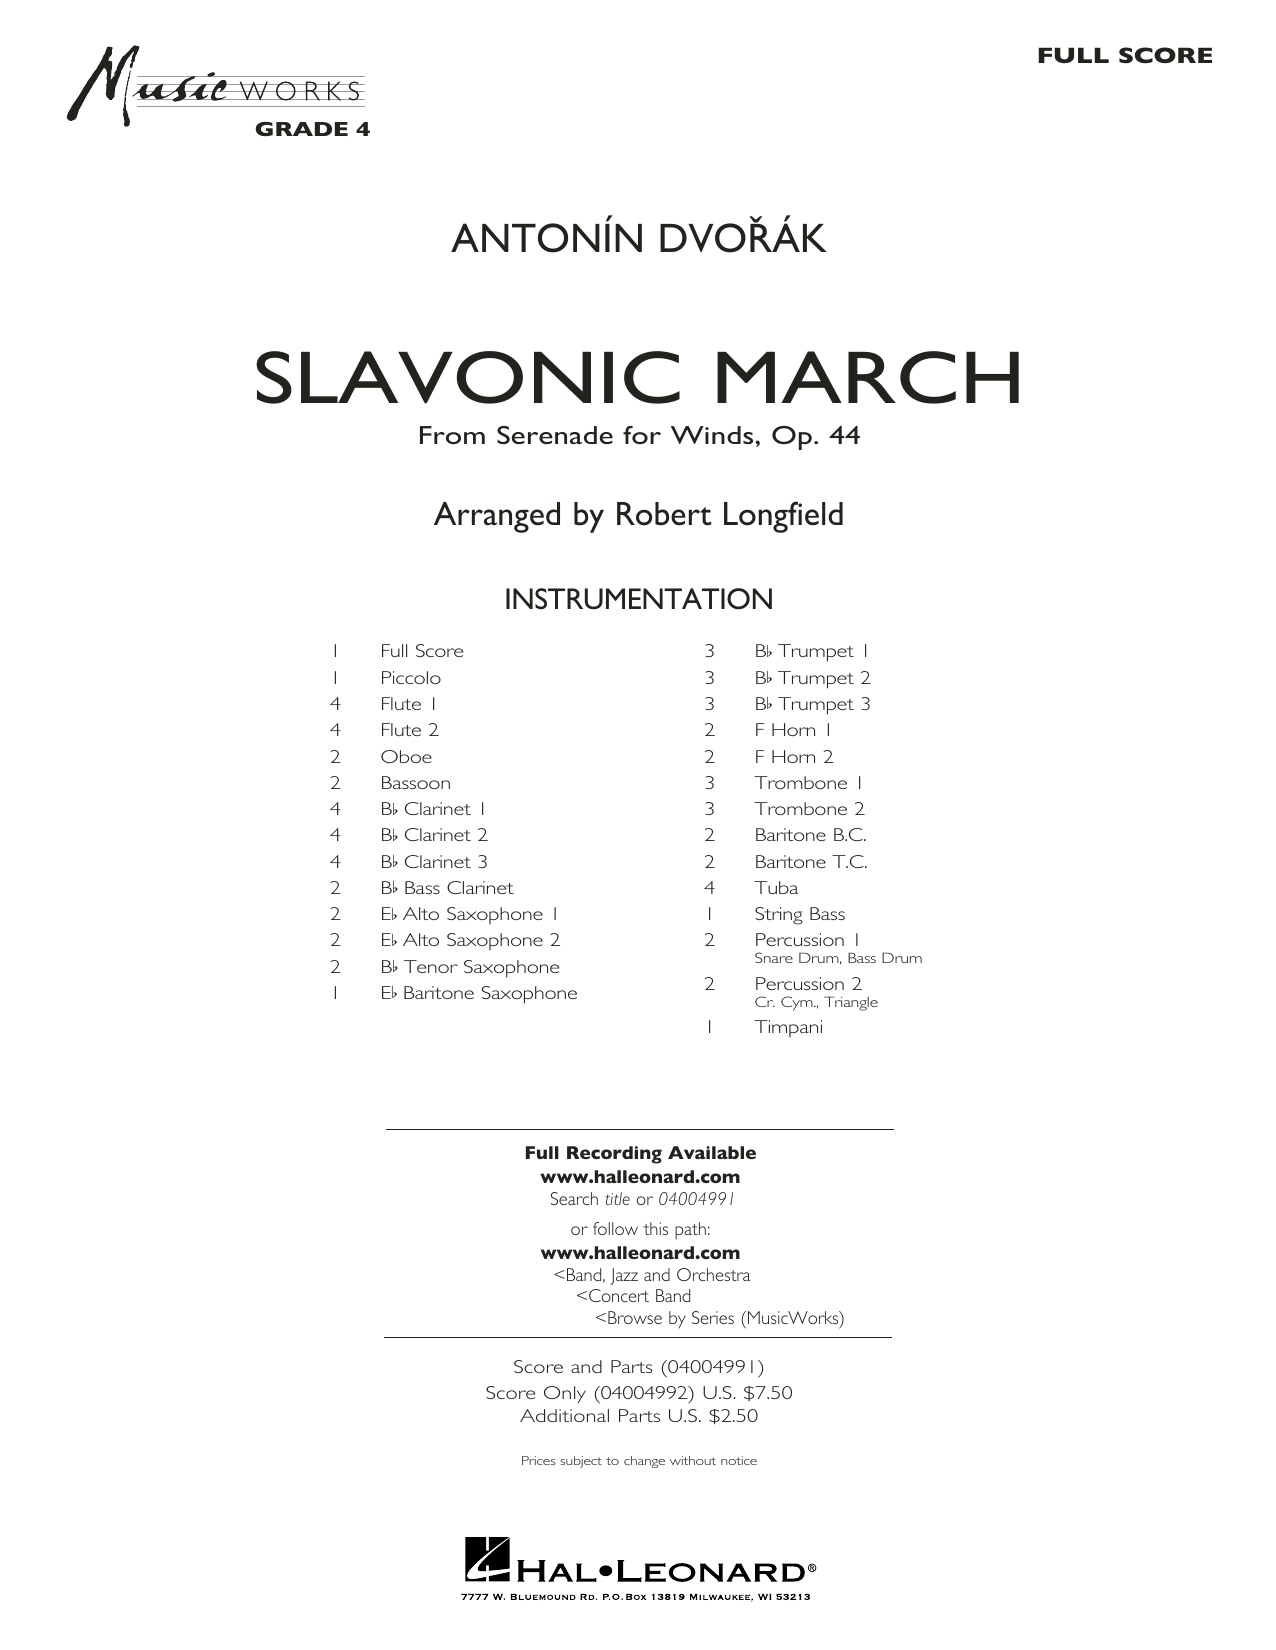 Robert Longfield Slavonic March (from Serenade for Winds, Op. 44) - Conductor Score (Full Score) sheet music preview music notes and score for Concert Band including 16 page(s)